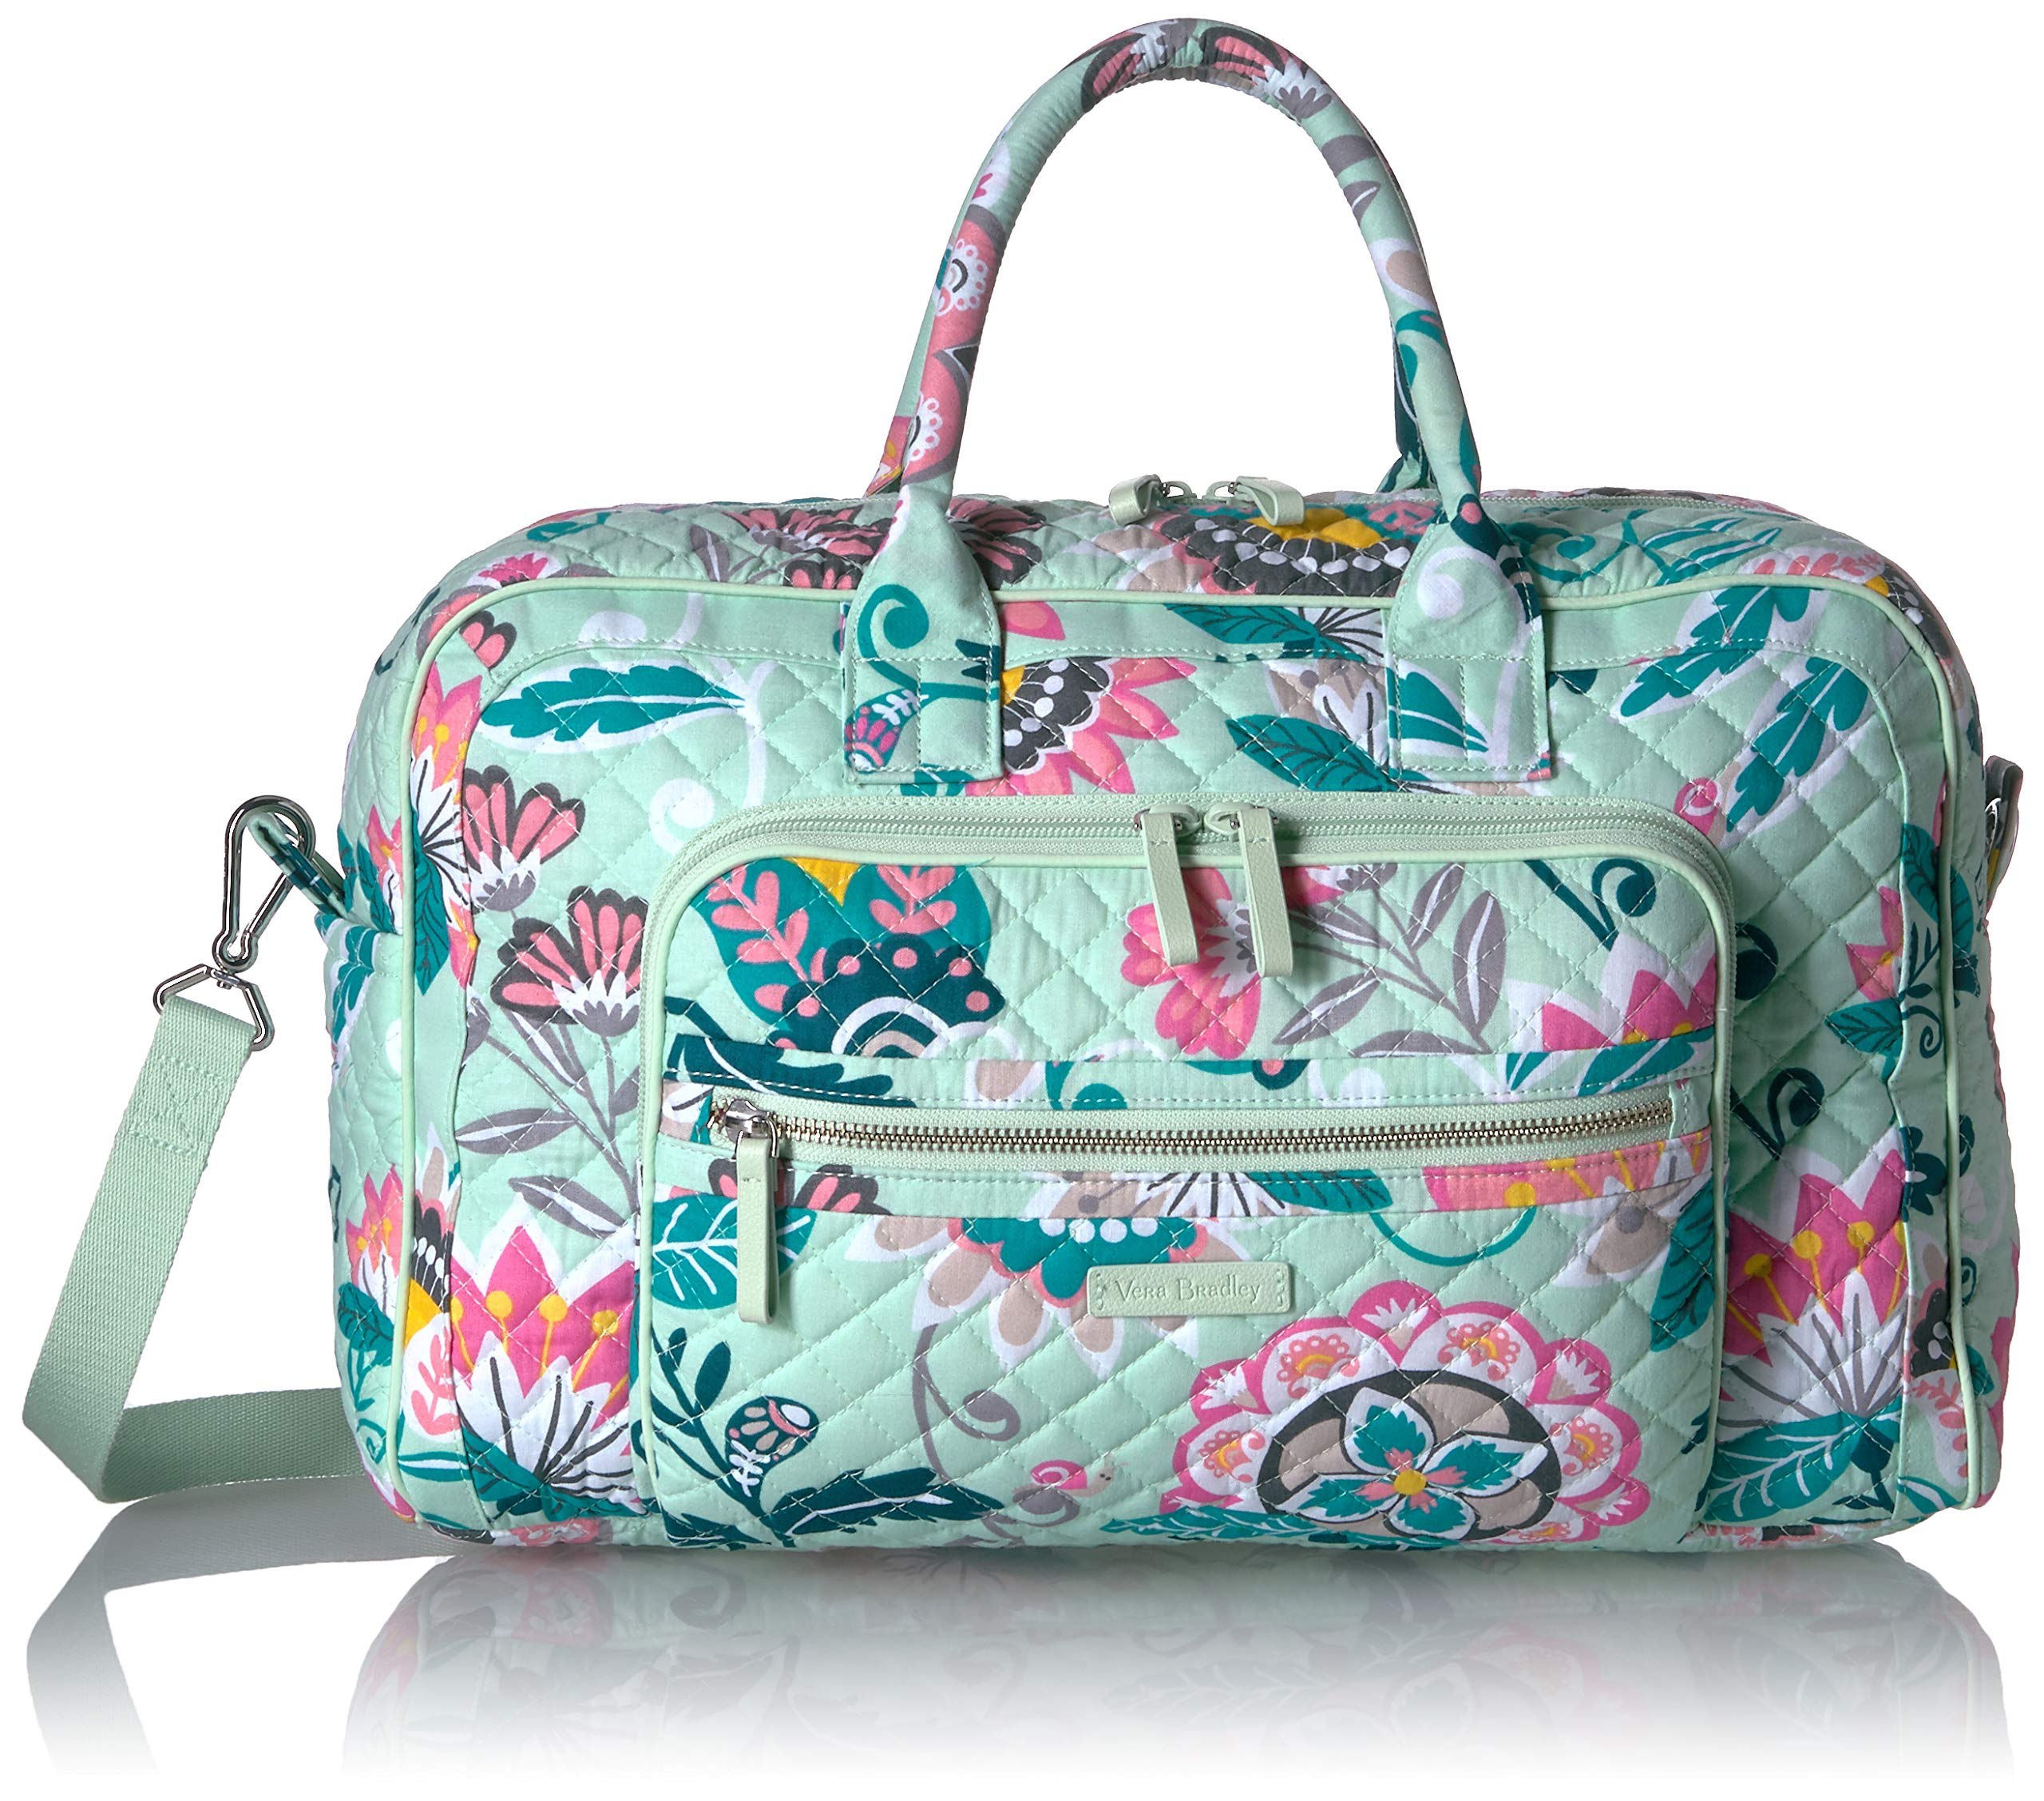 Vera Bradley Iconic Compact Weekender Travel Bag, Signature Cotton, Mint Flowers